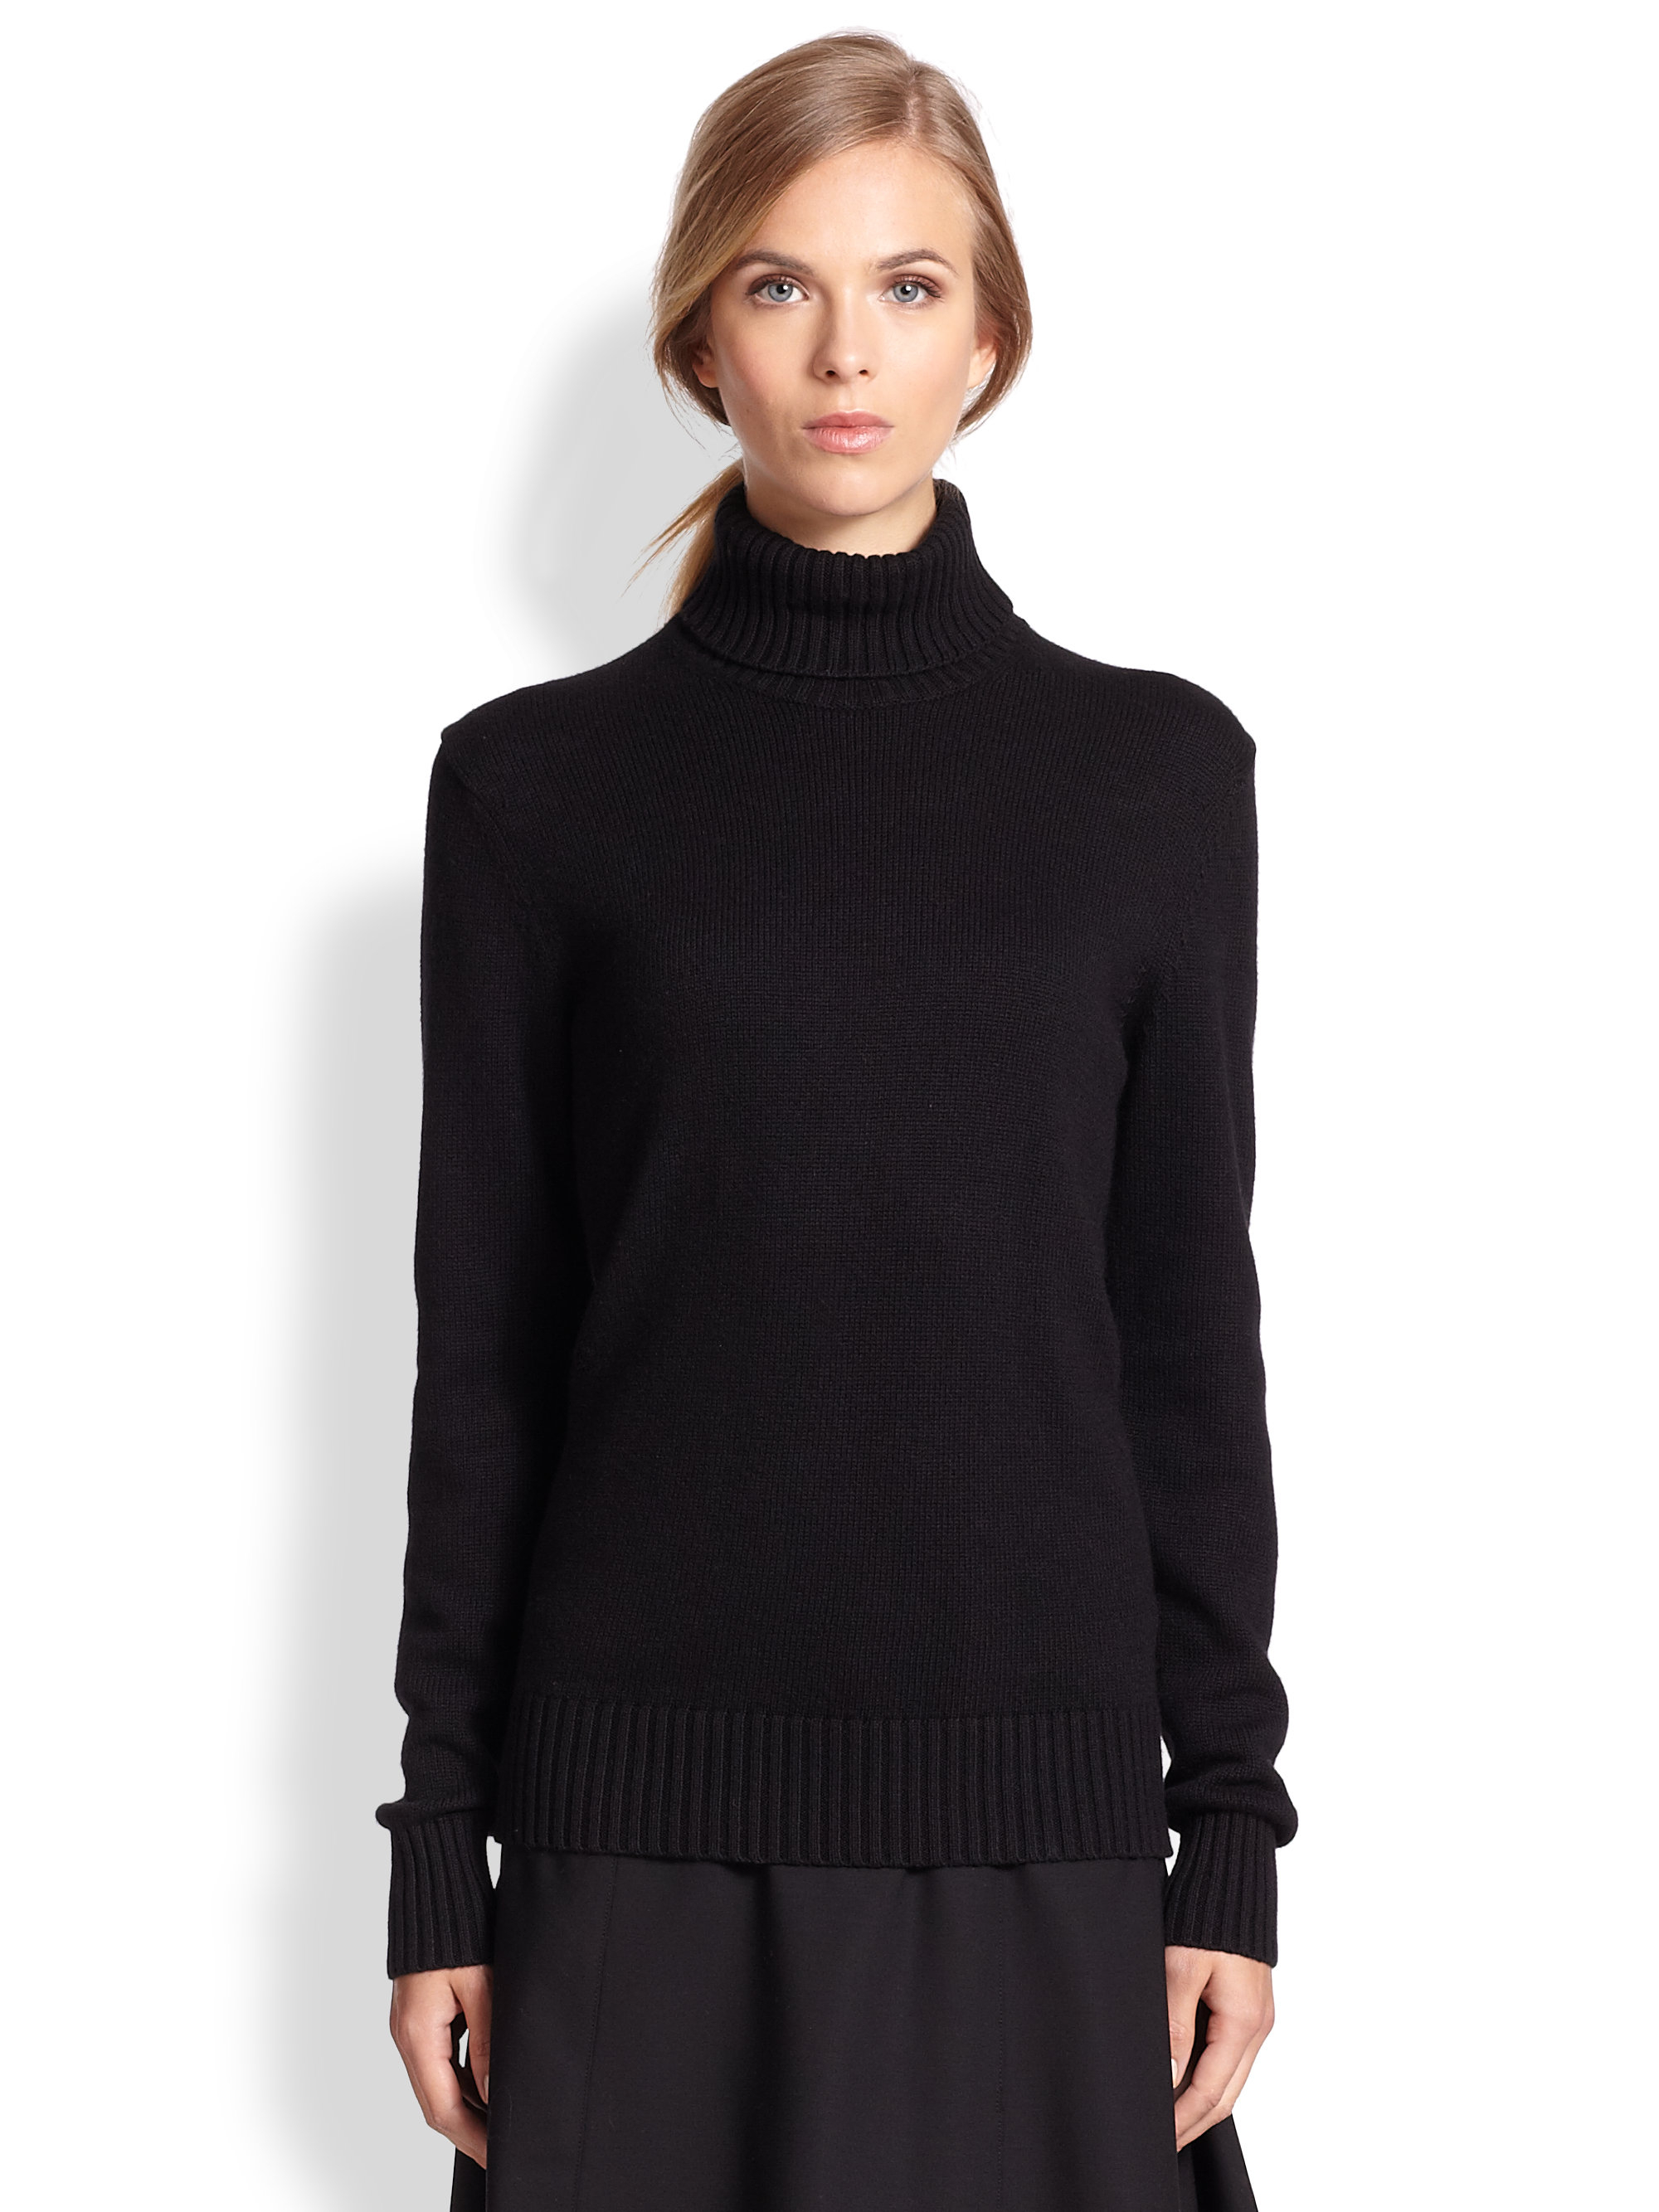 Michael kors Cotton Cashmere Turtleneck Sweater in Black | Lyst